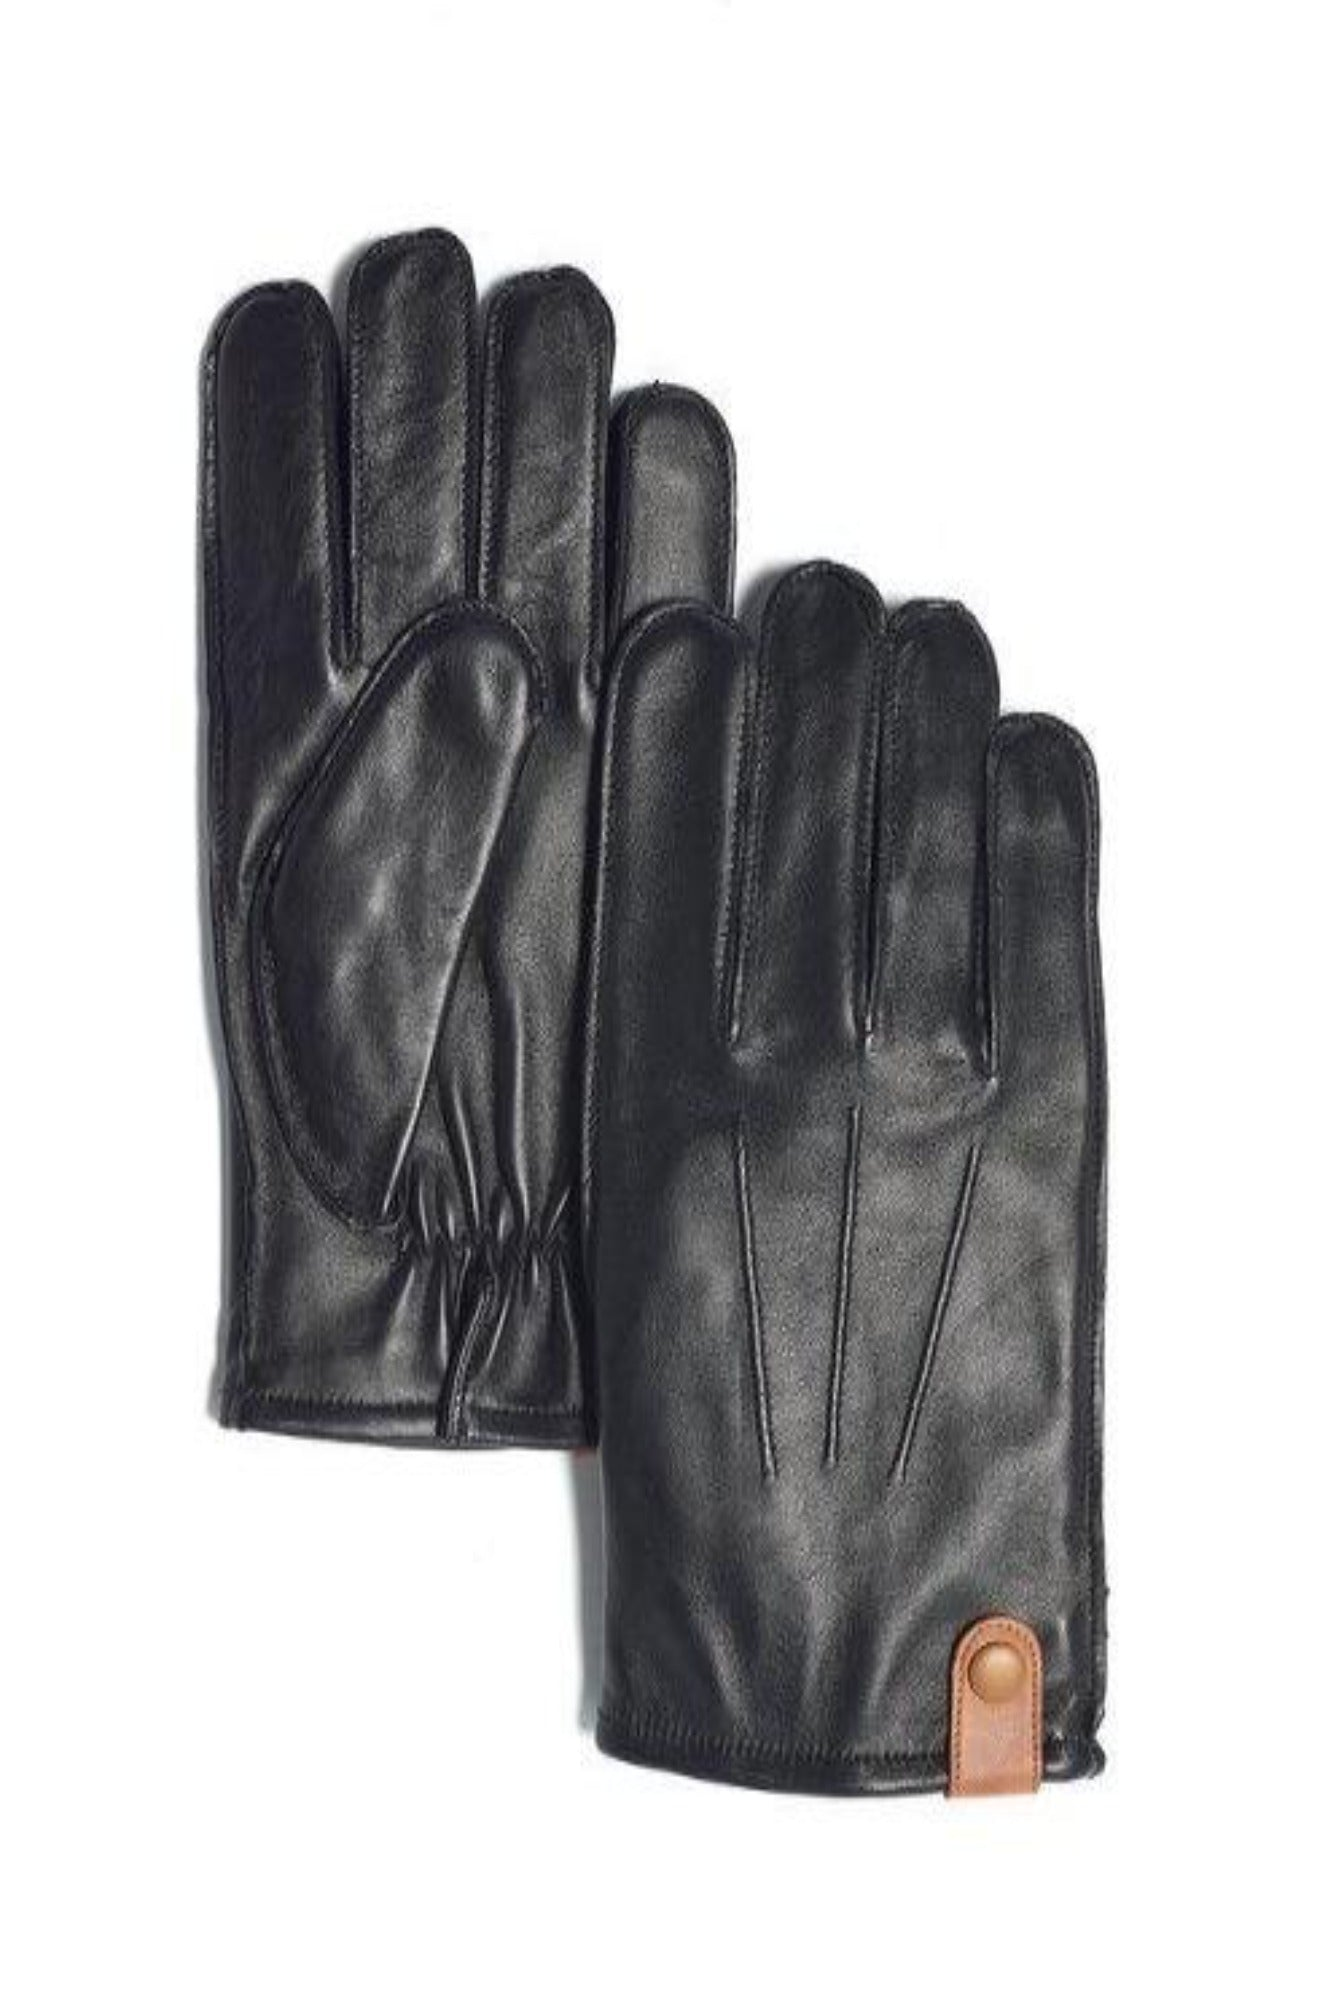 BRUME - GANDER GLOVE IN VINTAGE BLACK